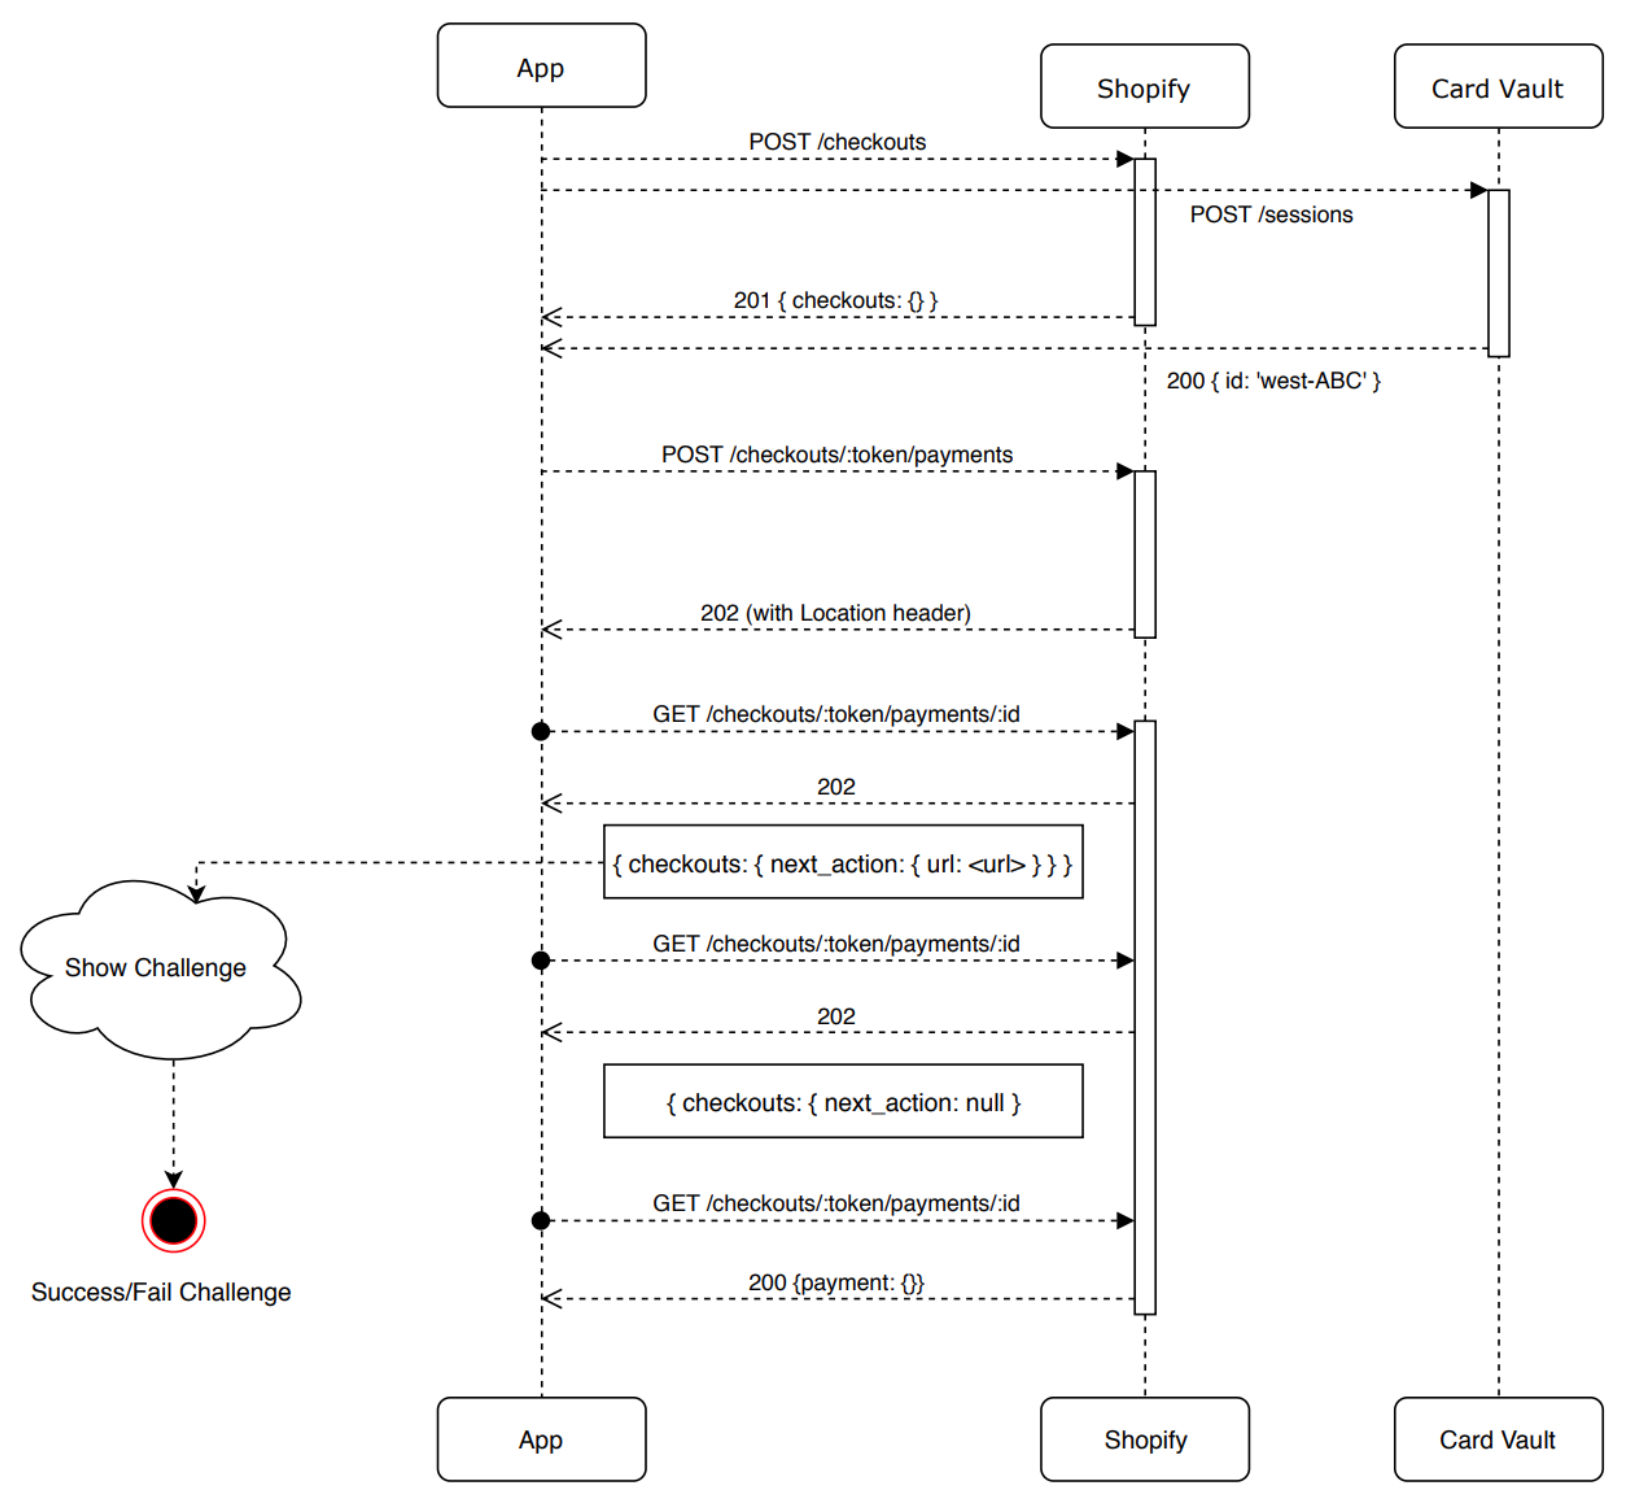 Workflow diagram that shows the payment process